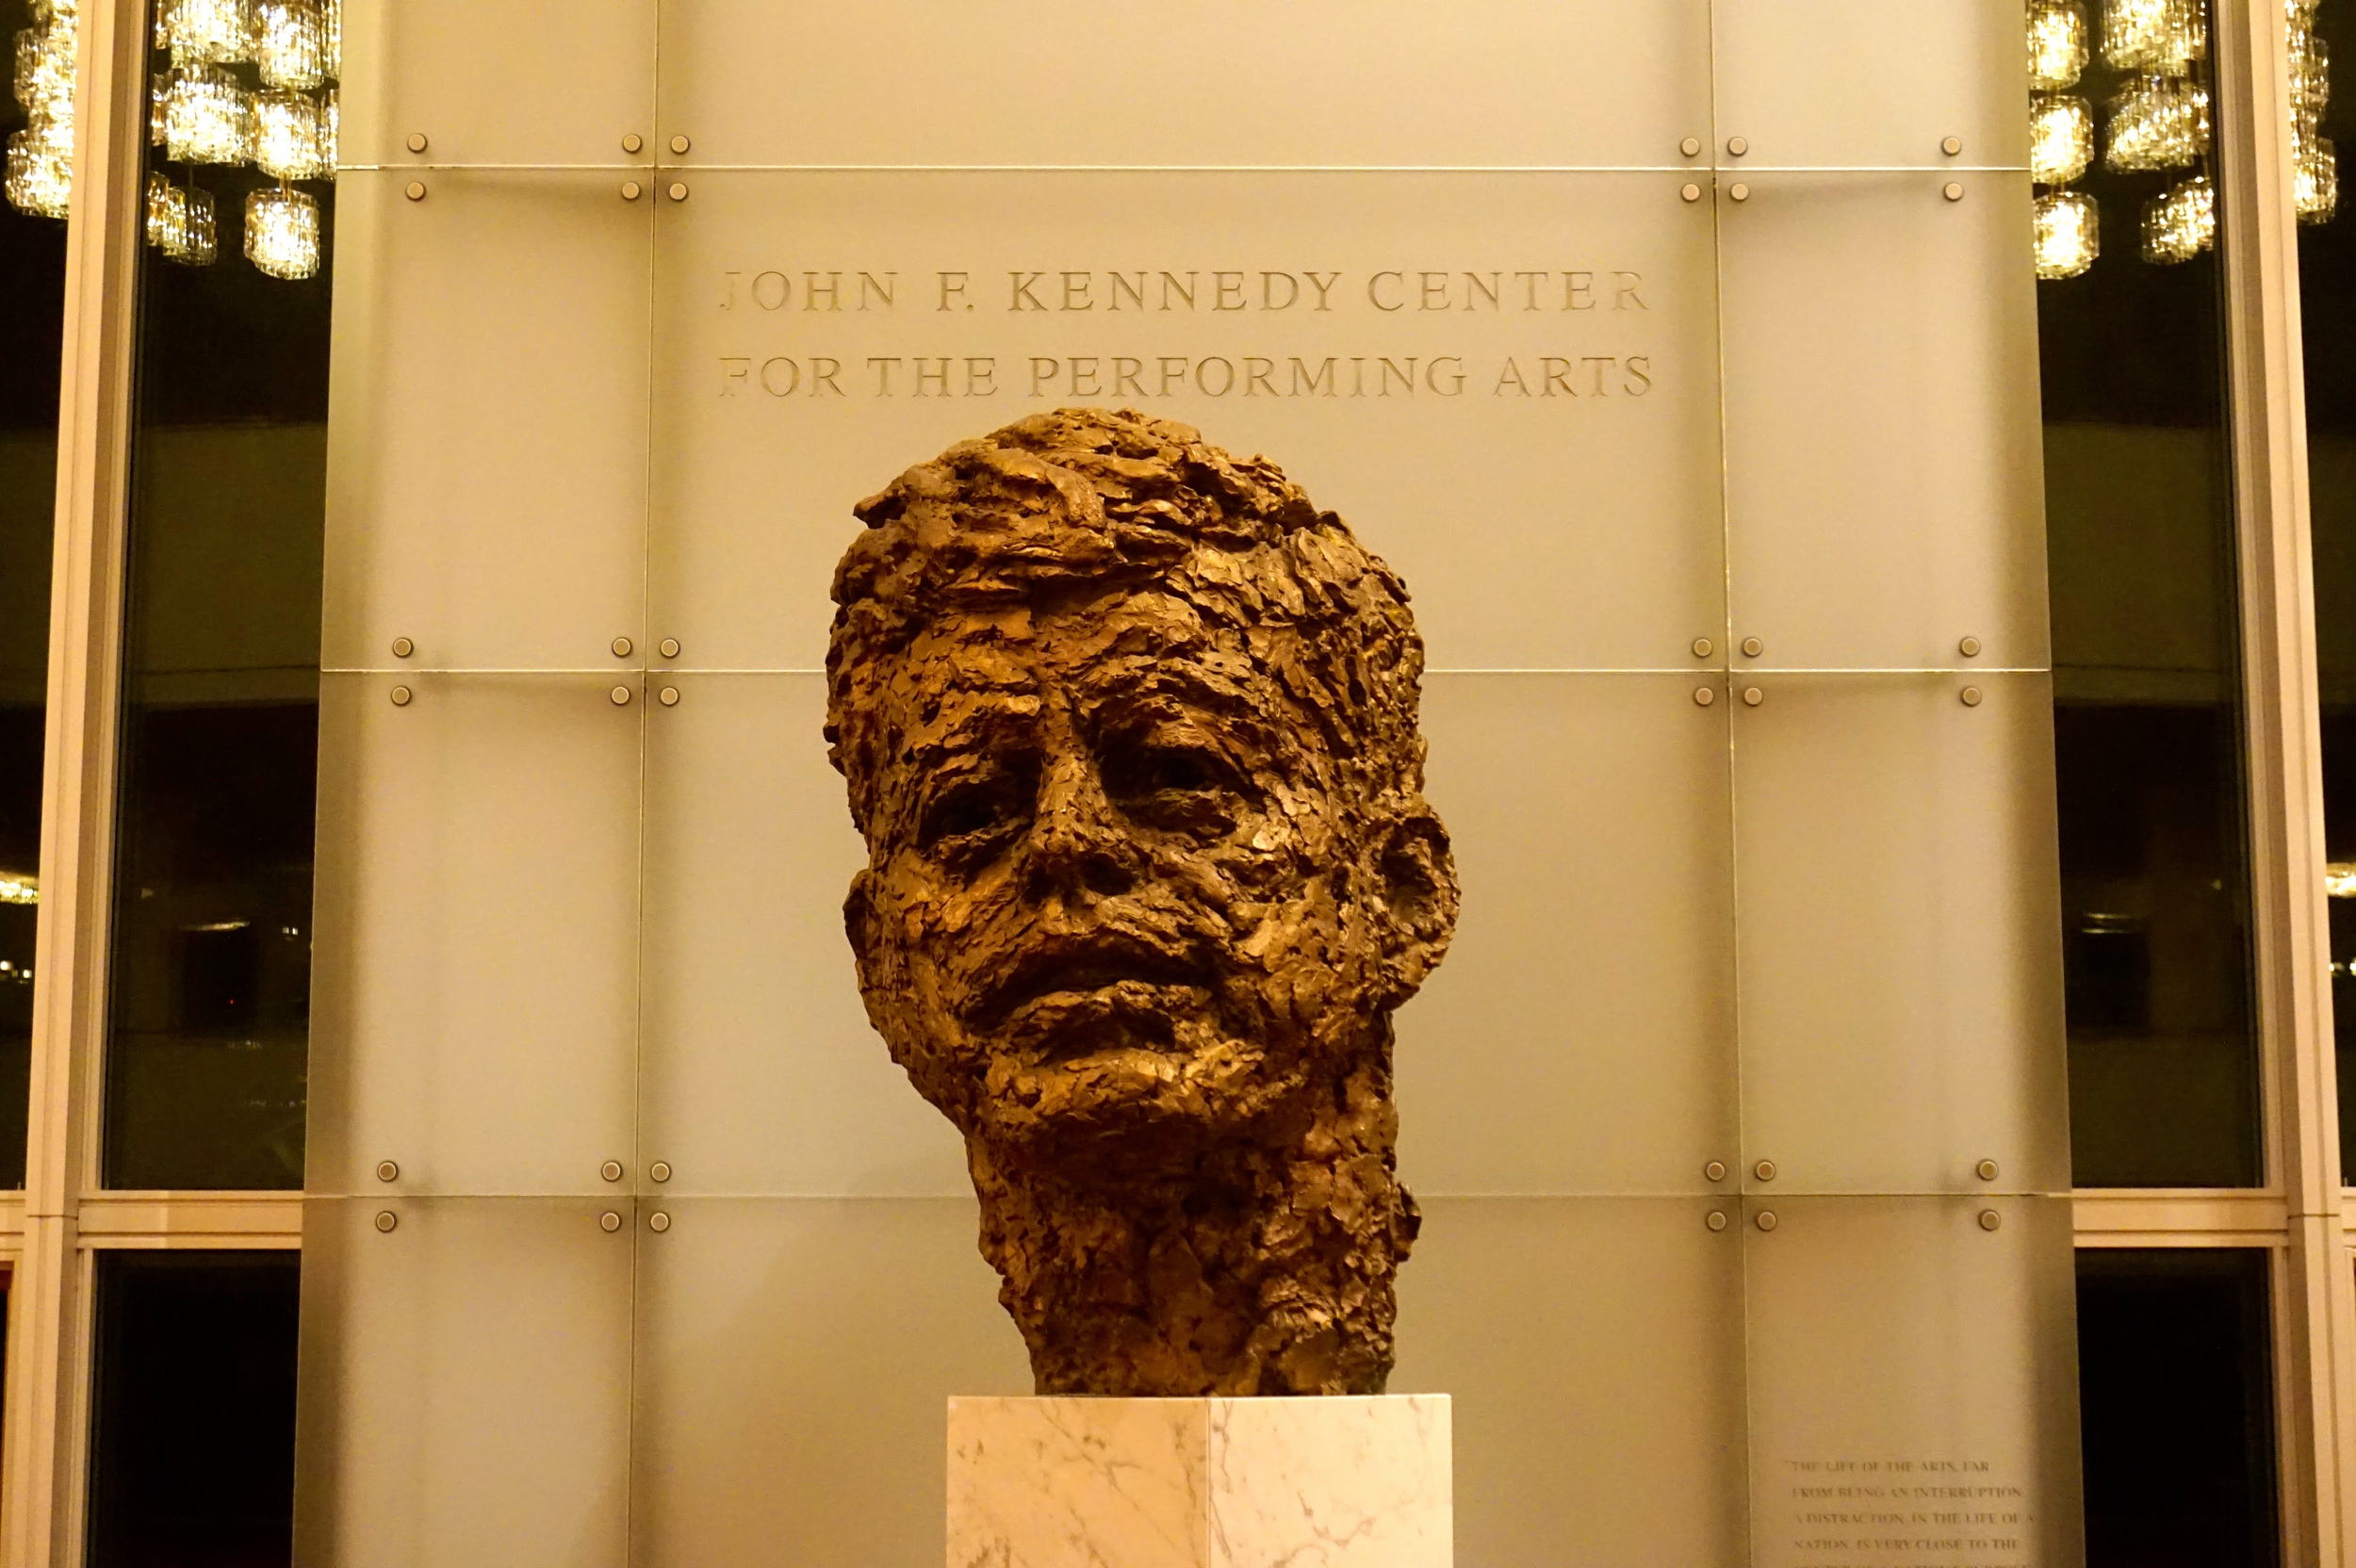 Bust of JFK by Robert Berks